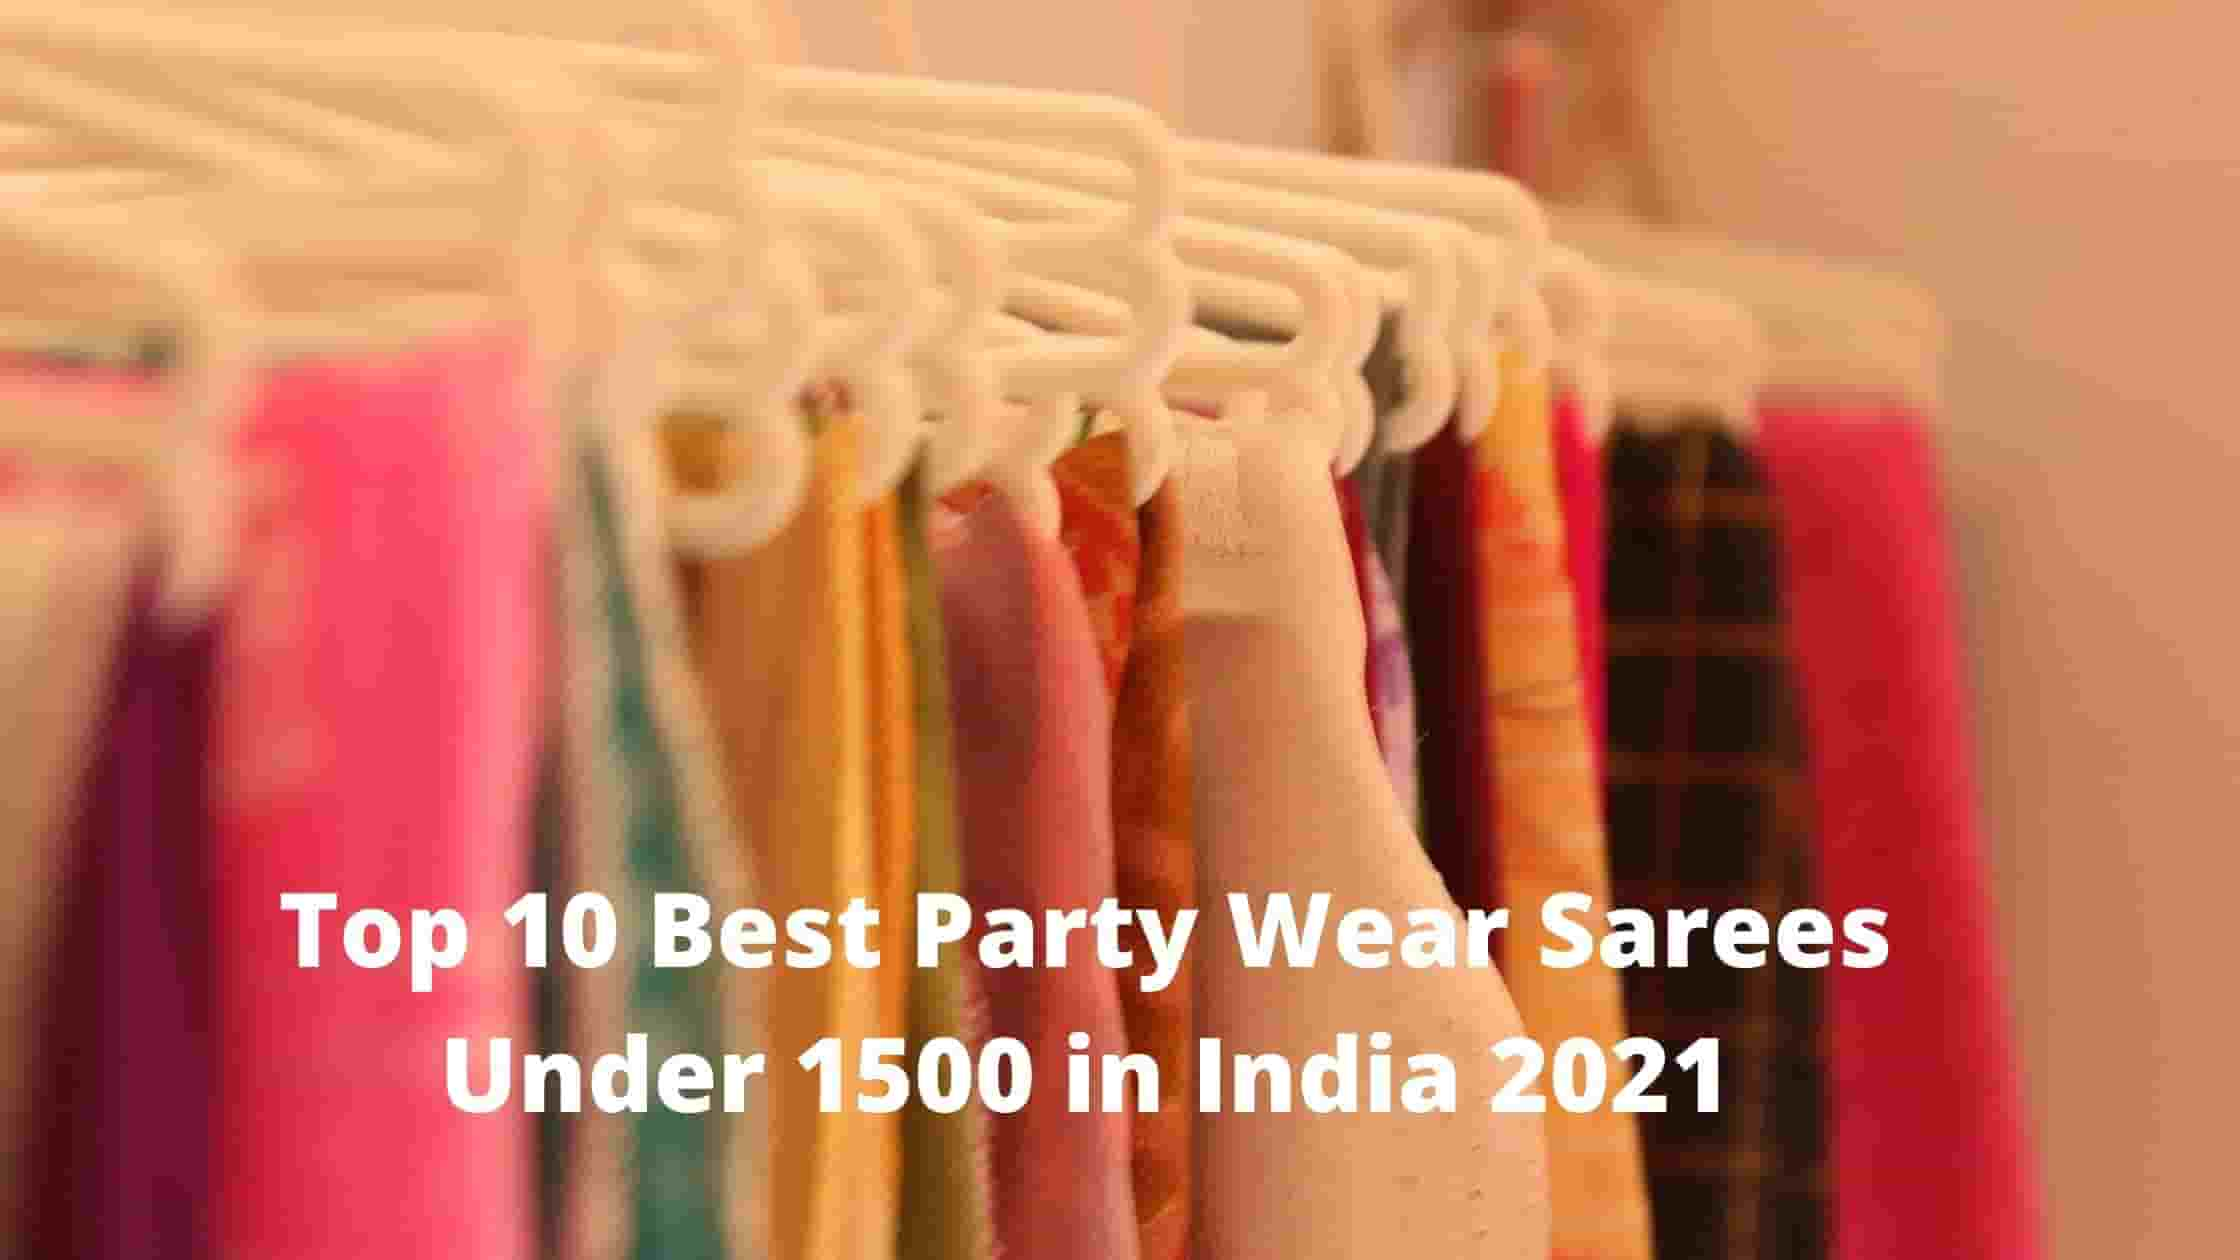 Now Top 10 Best Party Wear Sarees Under 1500 in India 2021 [Bengali]